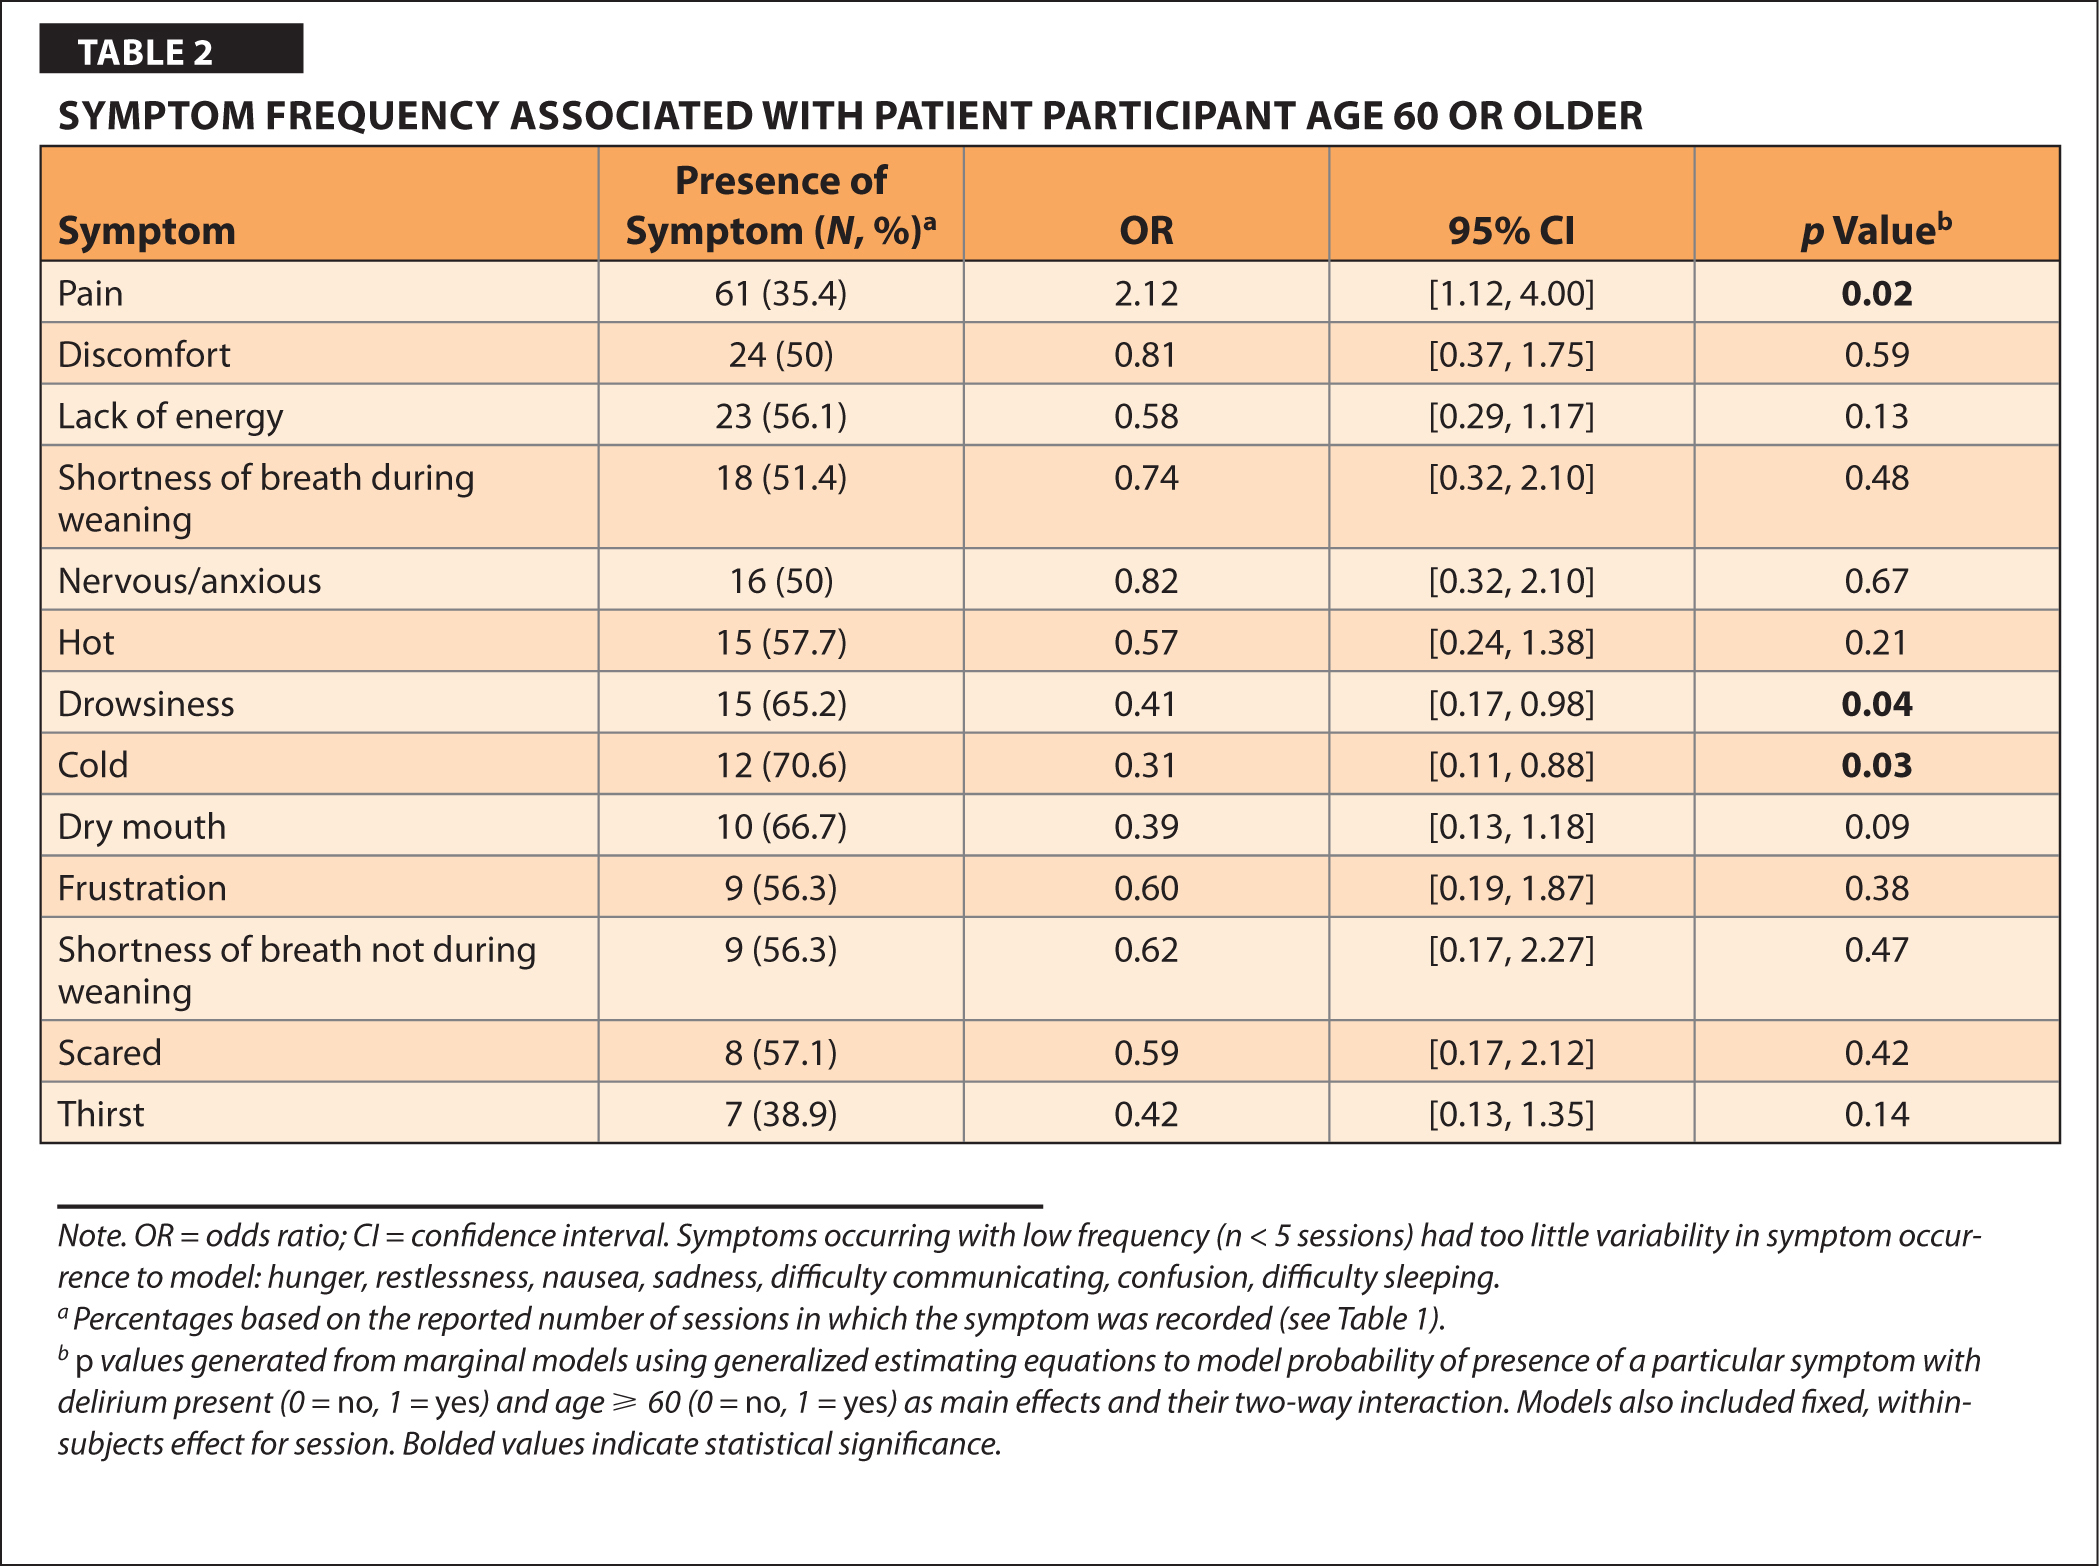 Symptom Frequency Associated with Patient Participant Age 60 or Older